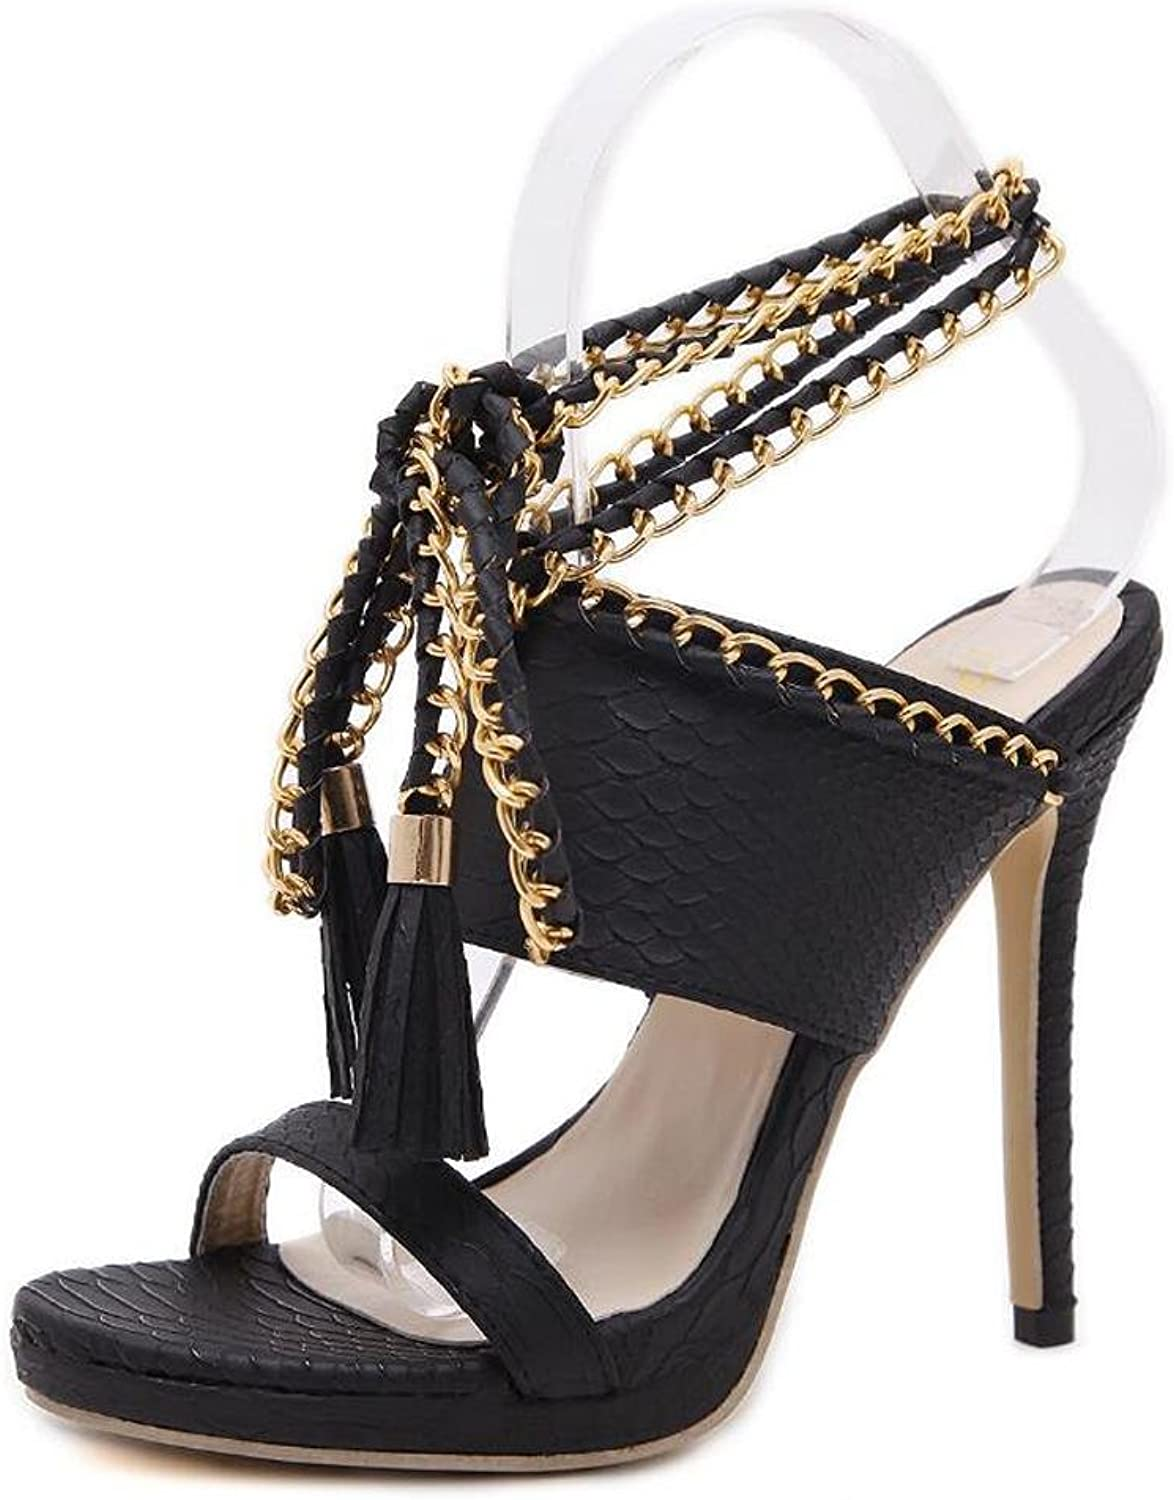 L@YC Women's High Heels Compilation Chain Straps Sandals Comfortable Dance Dress shoes